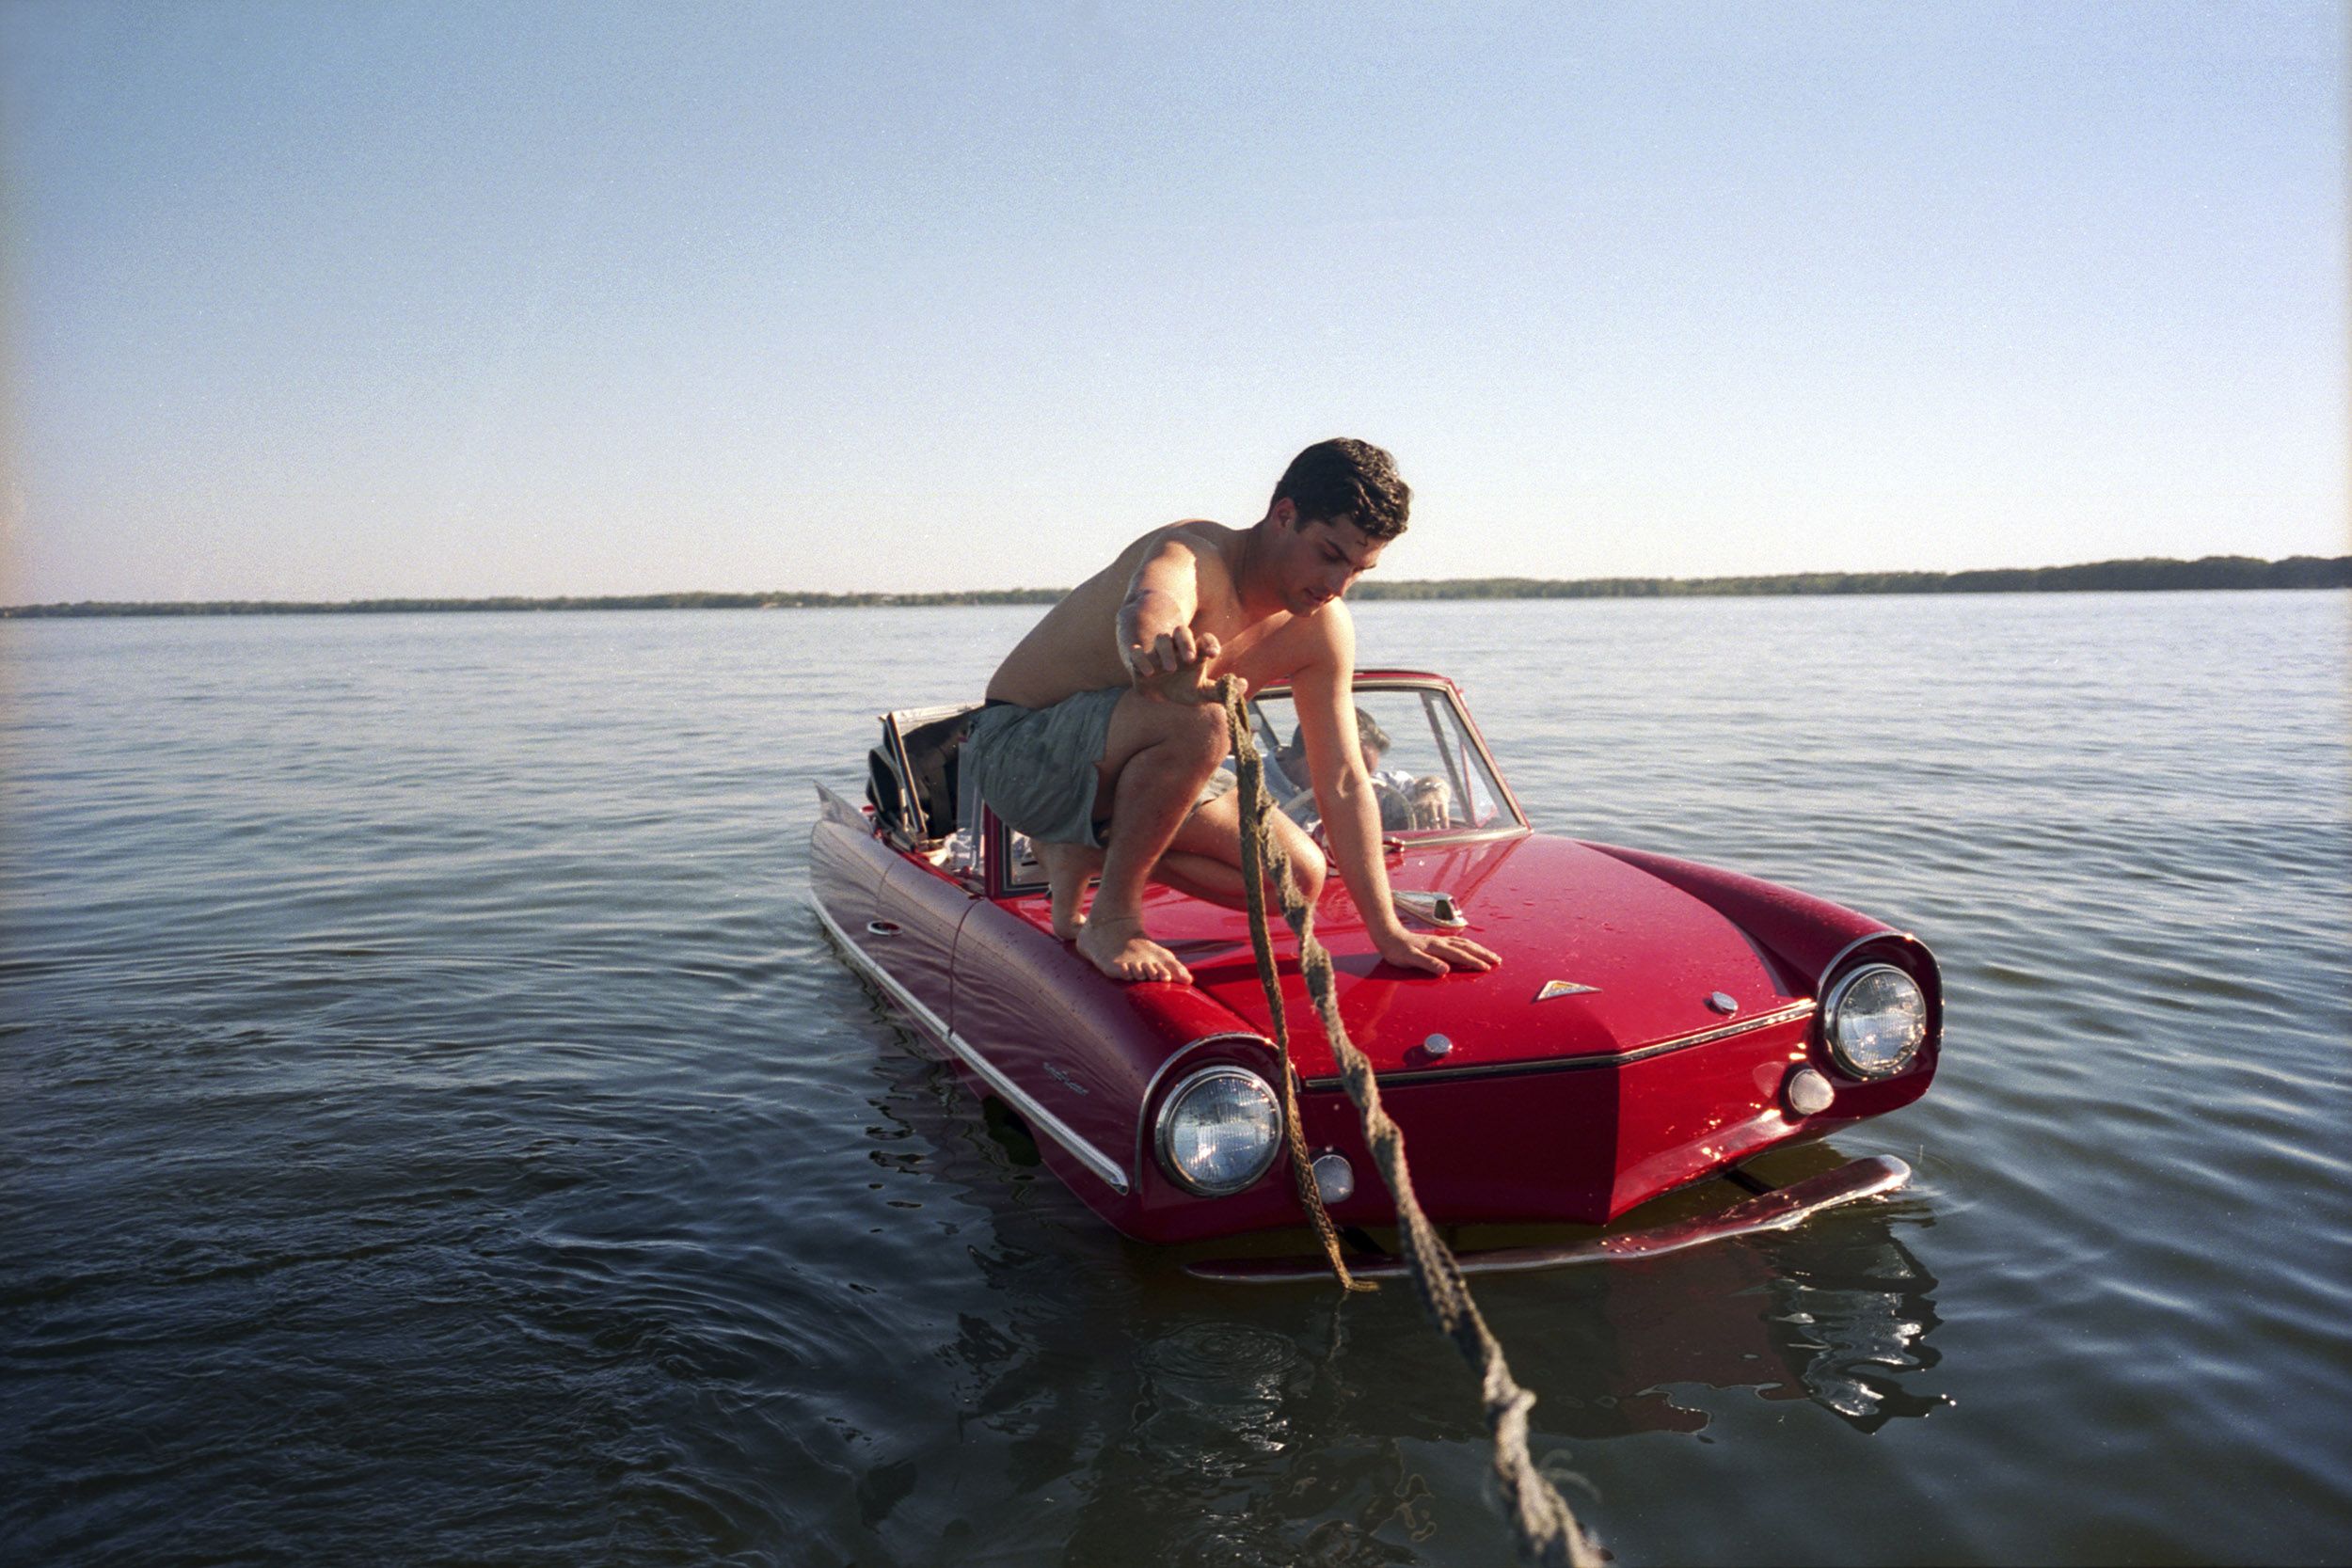 AMPHICAR_INTERSECTION_15.jpg